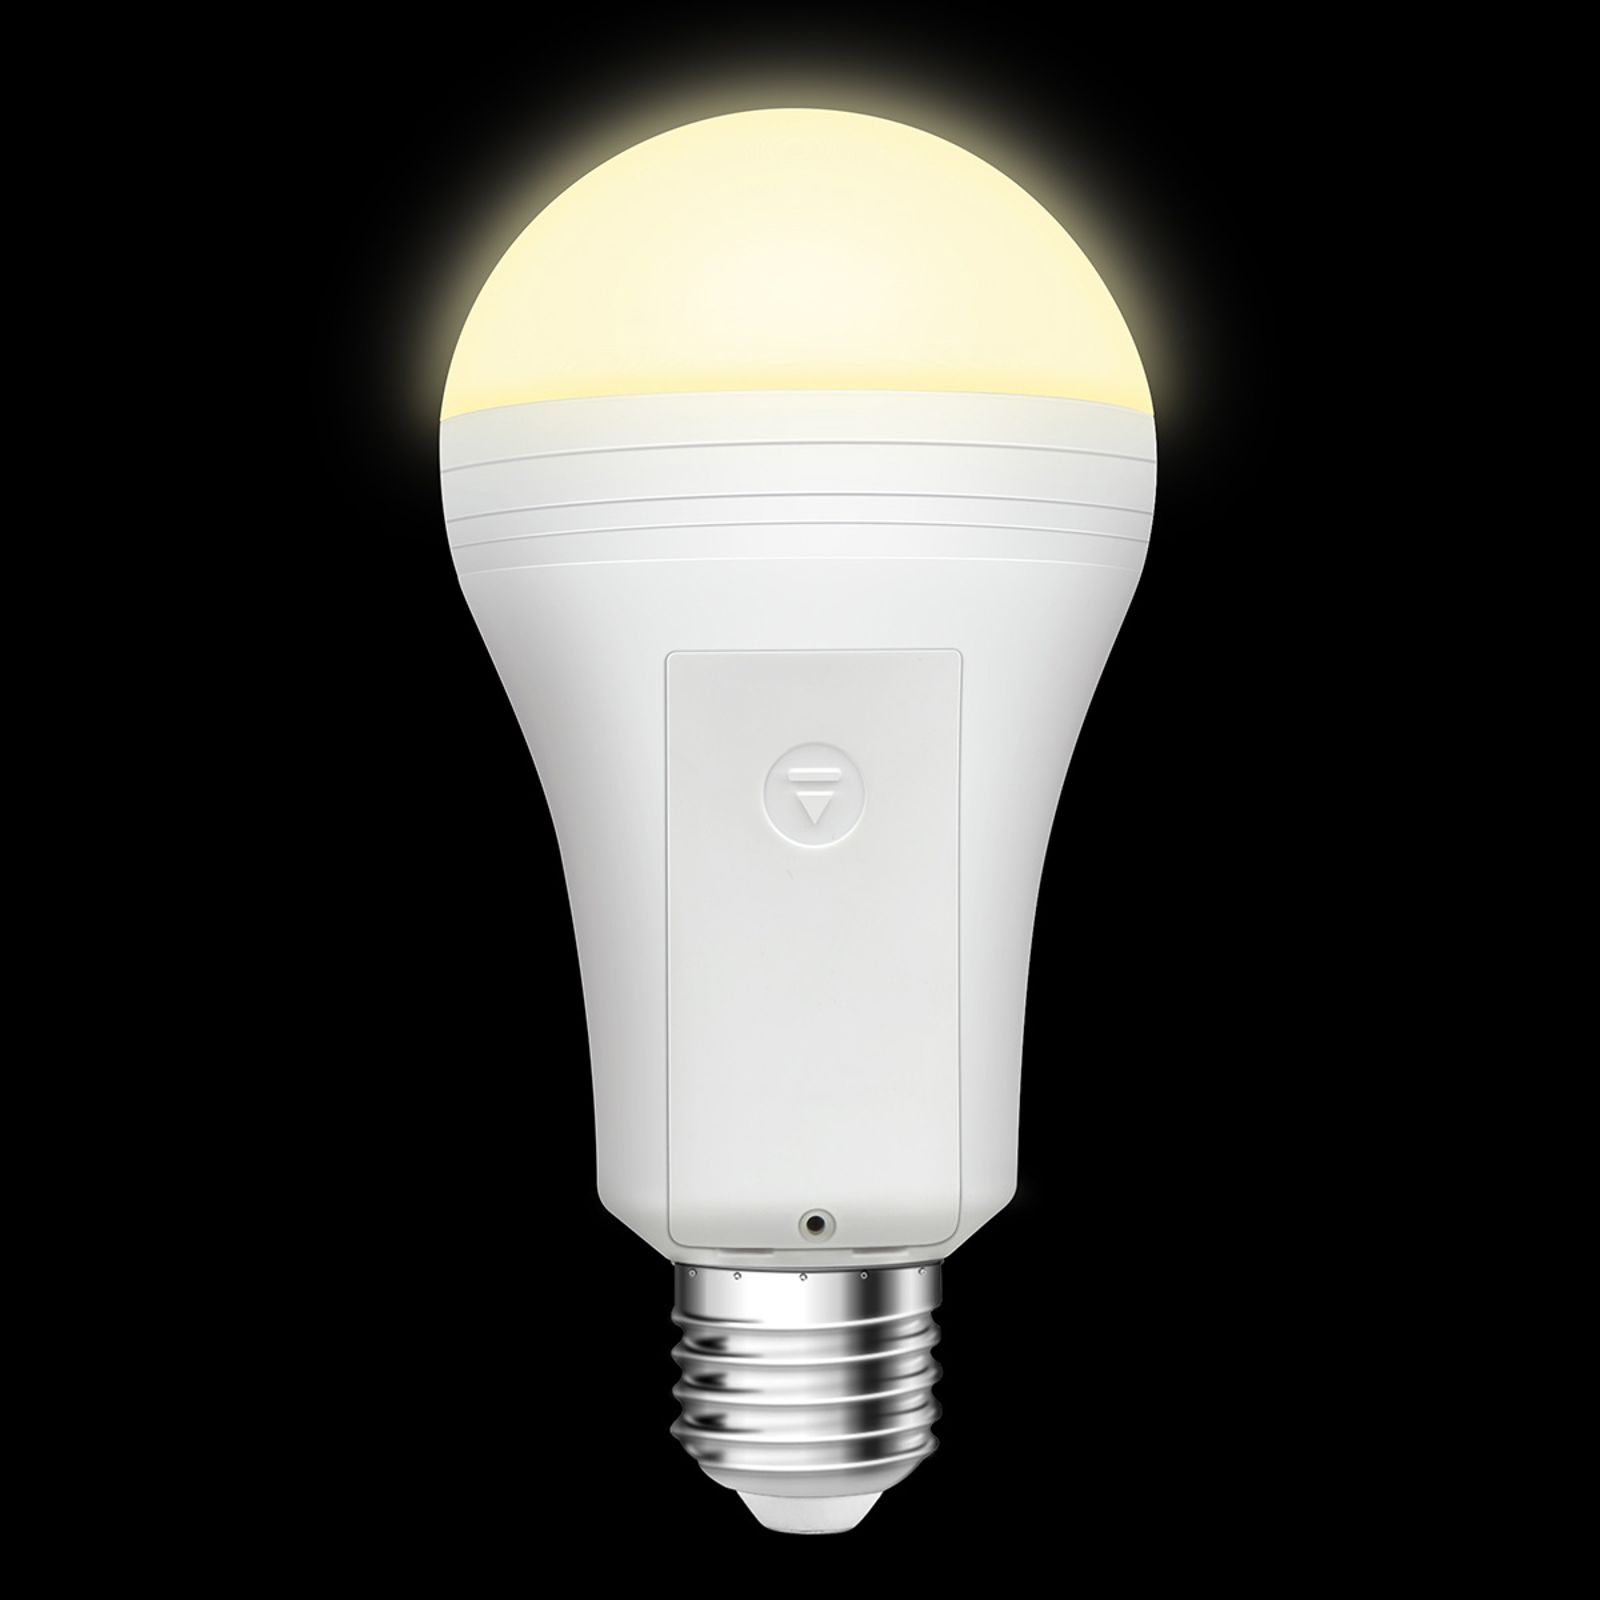 Sengled Everbright LED-Lampe mit Notlicht, E27 6W